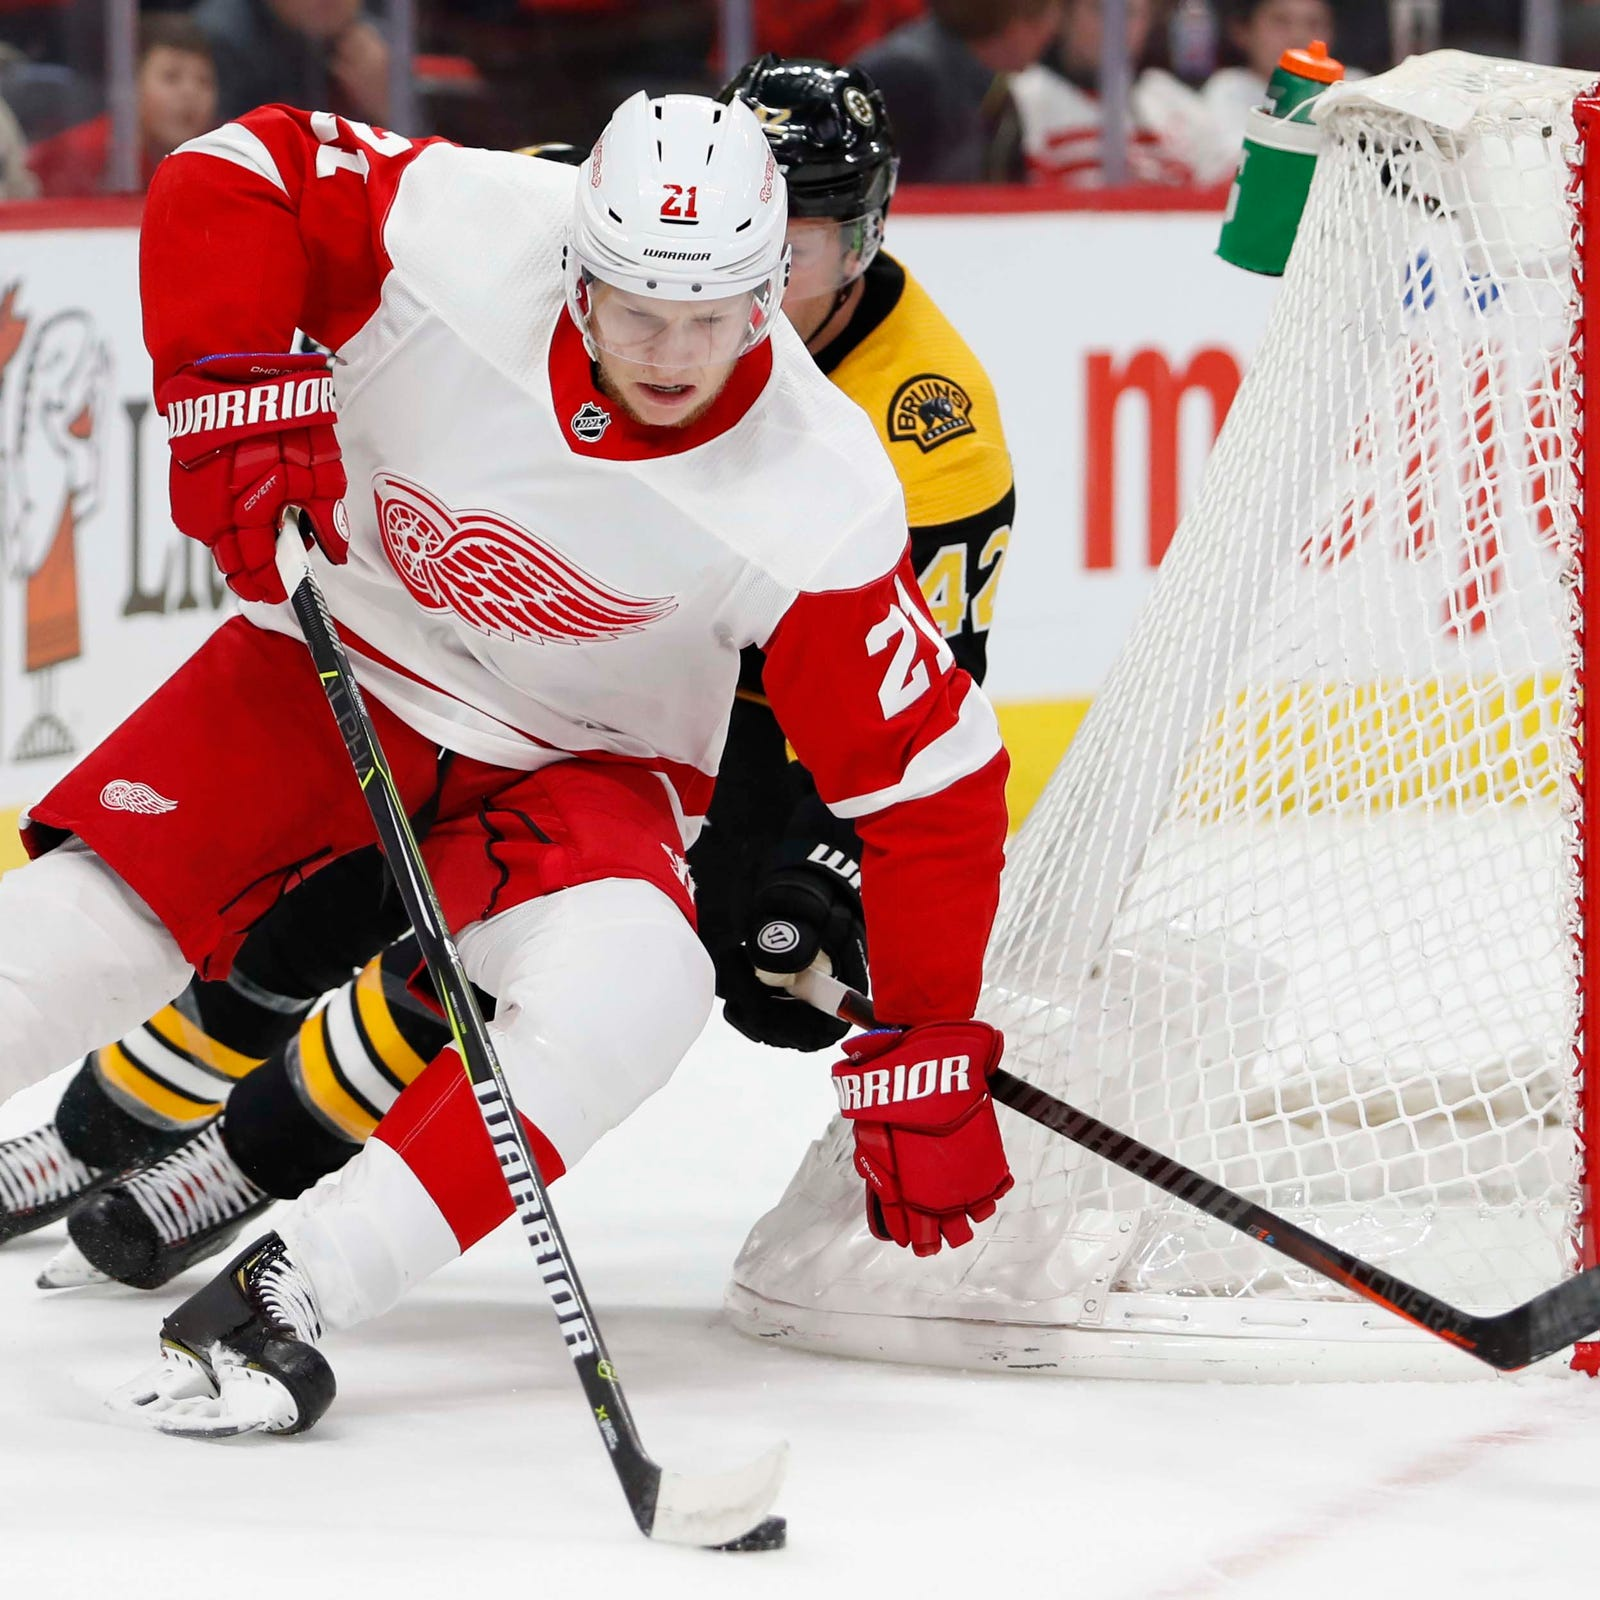 Detroit Red Wings' Dennis Cholowski excels in rebuild and ... sneakers?